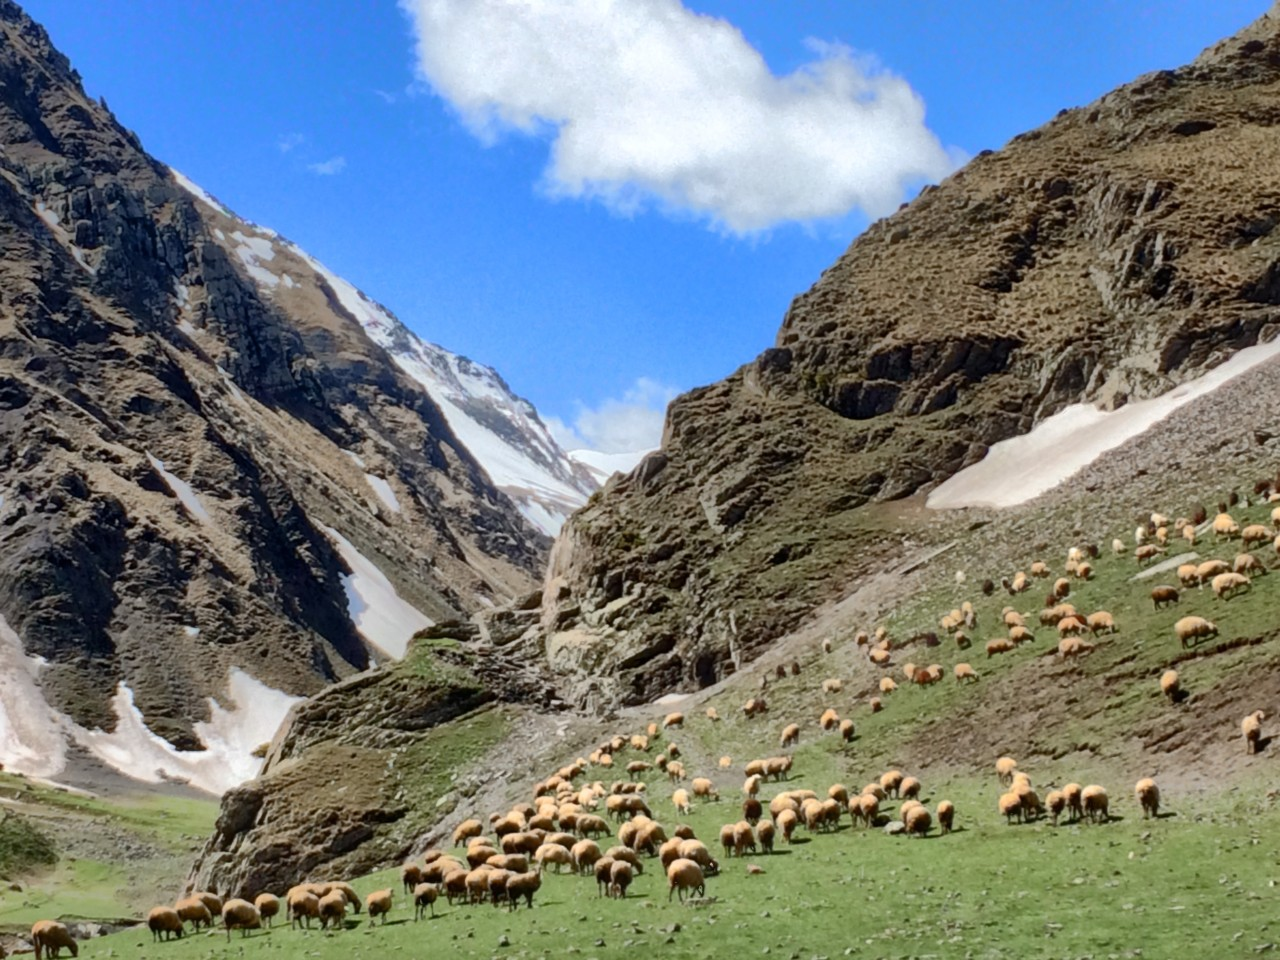 Khinalug mountains and sheep